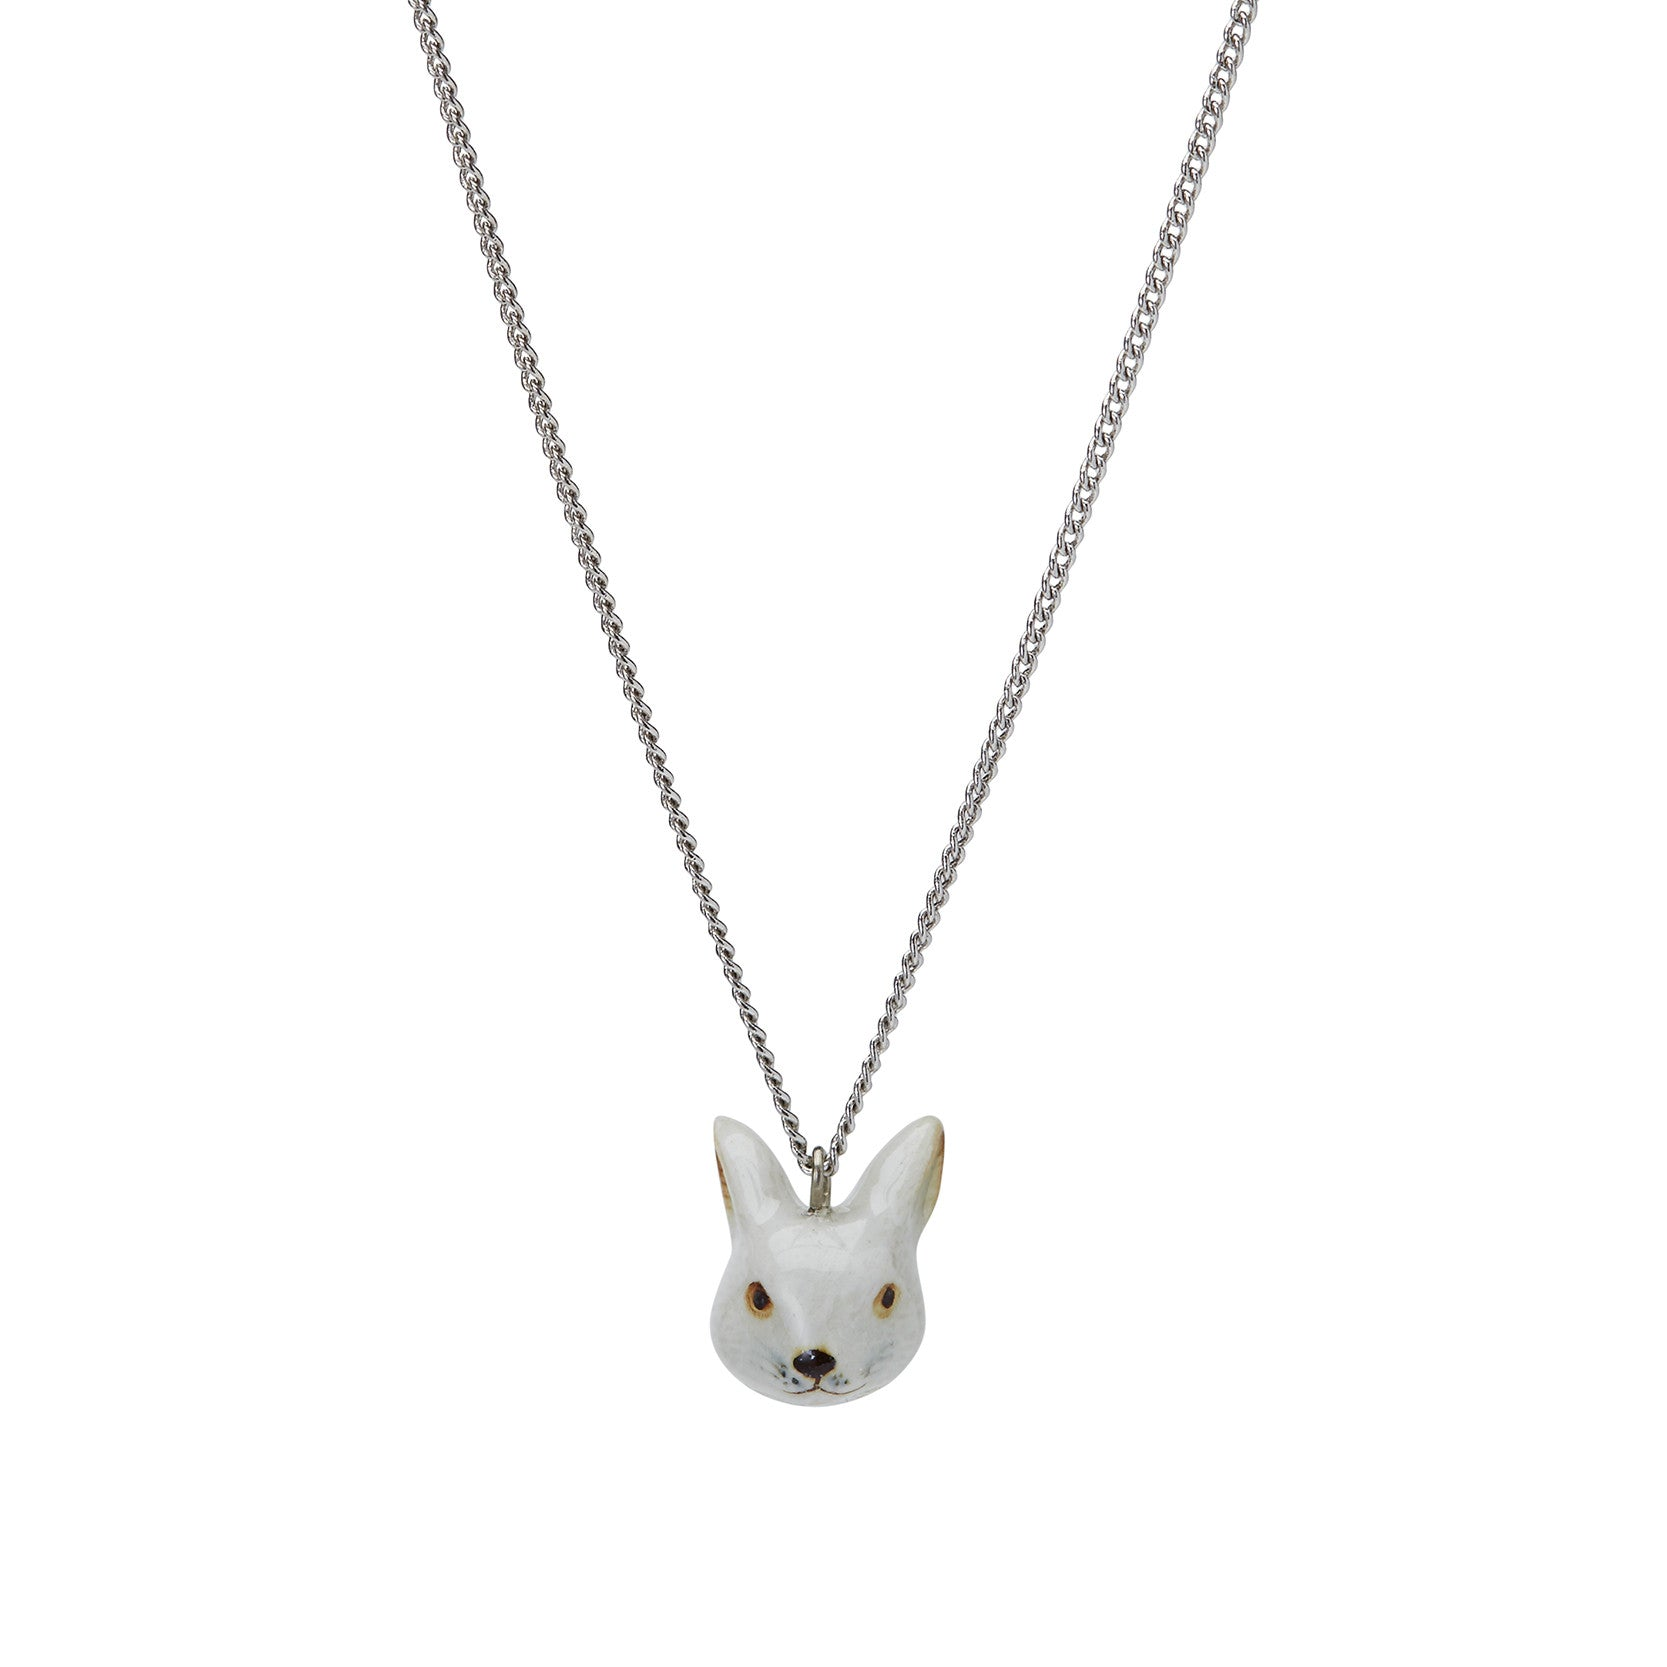 White Rabbit Head Necklace